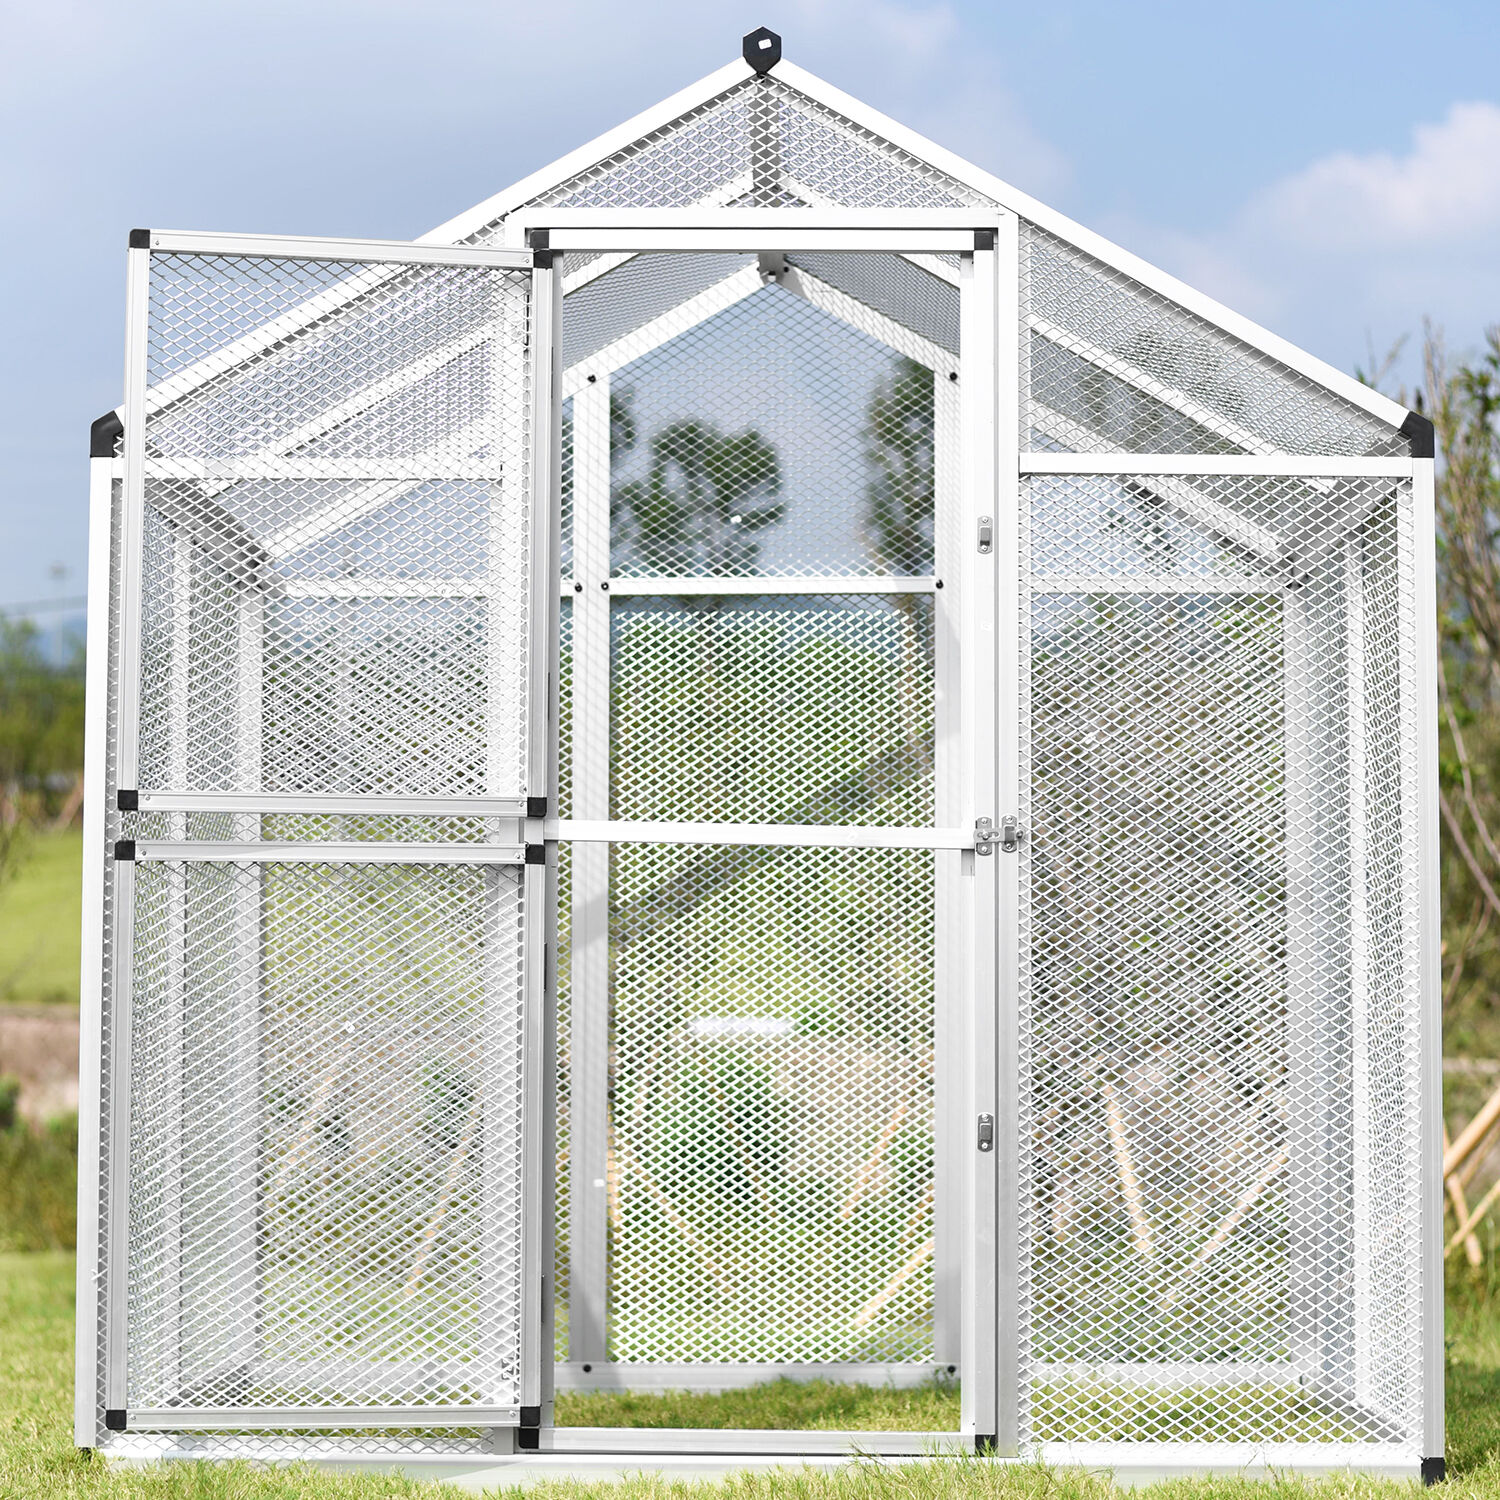 Large Gentle Animals House Aluminum Bird Cage Pet Poultry Walk in ...